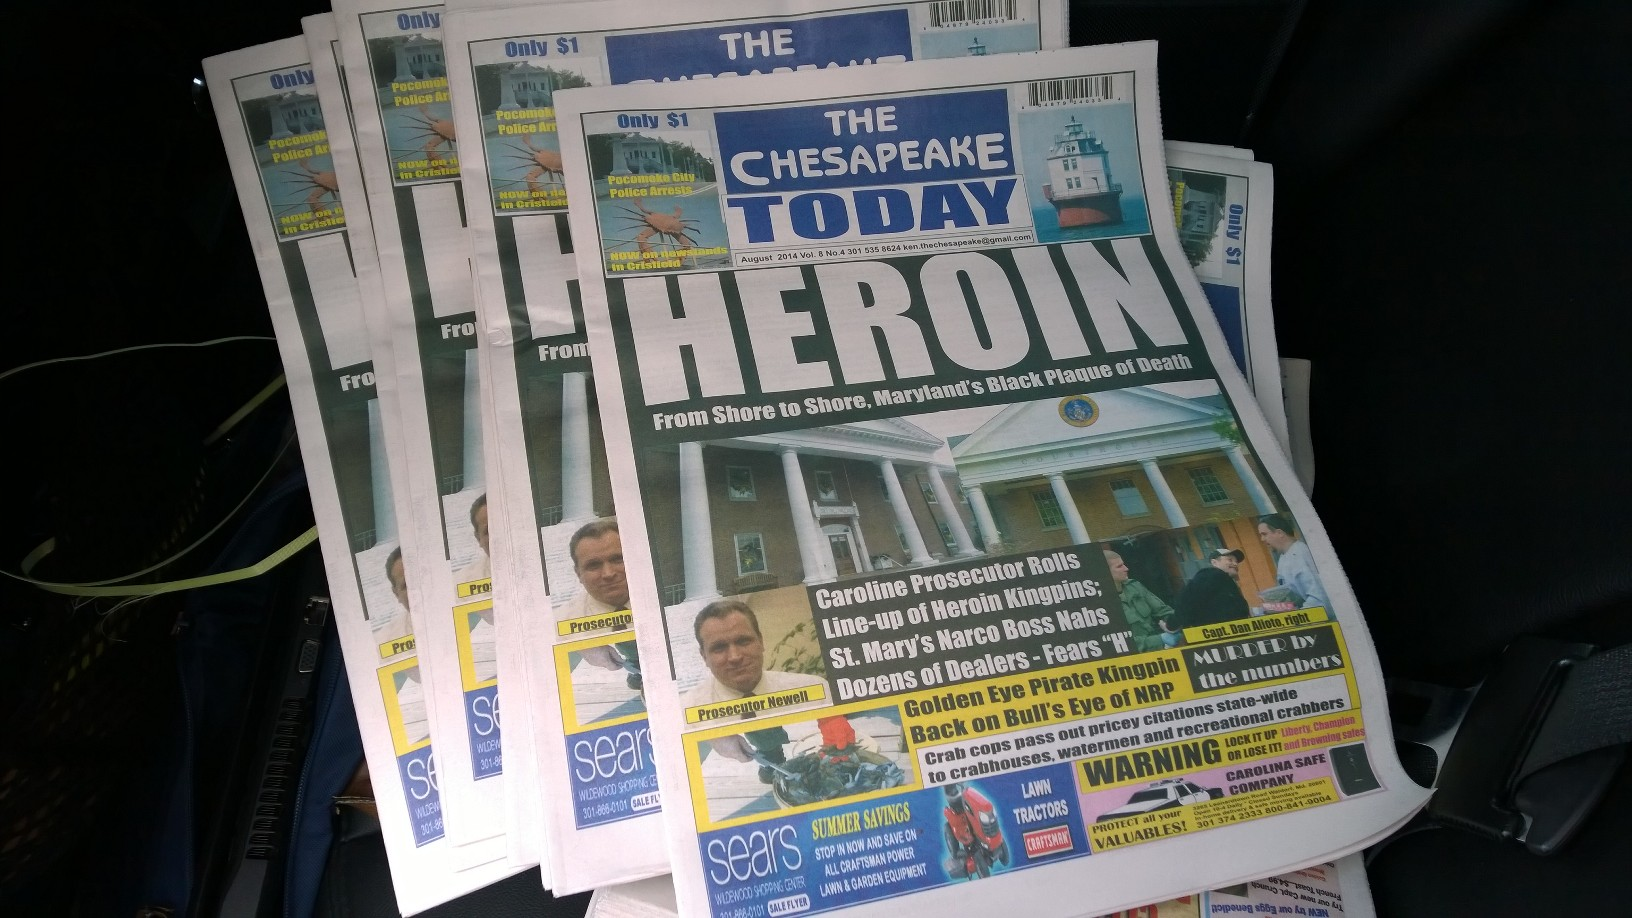 August now being delivered to newsstands